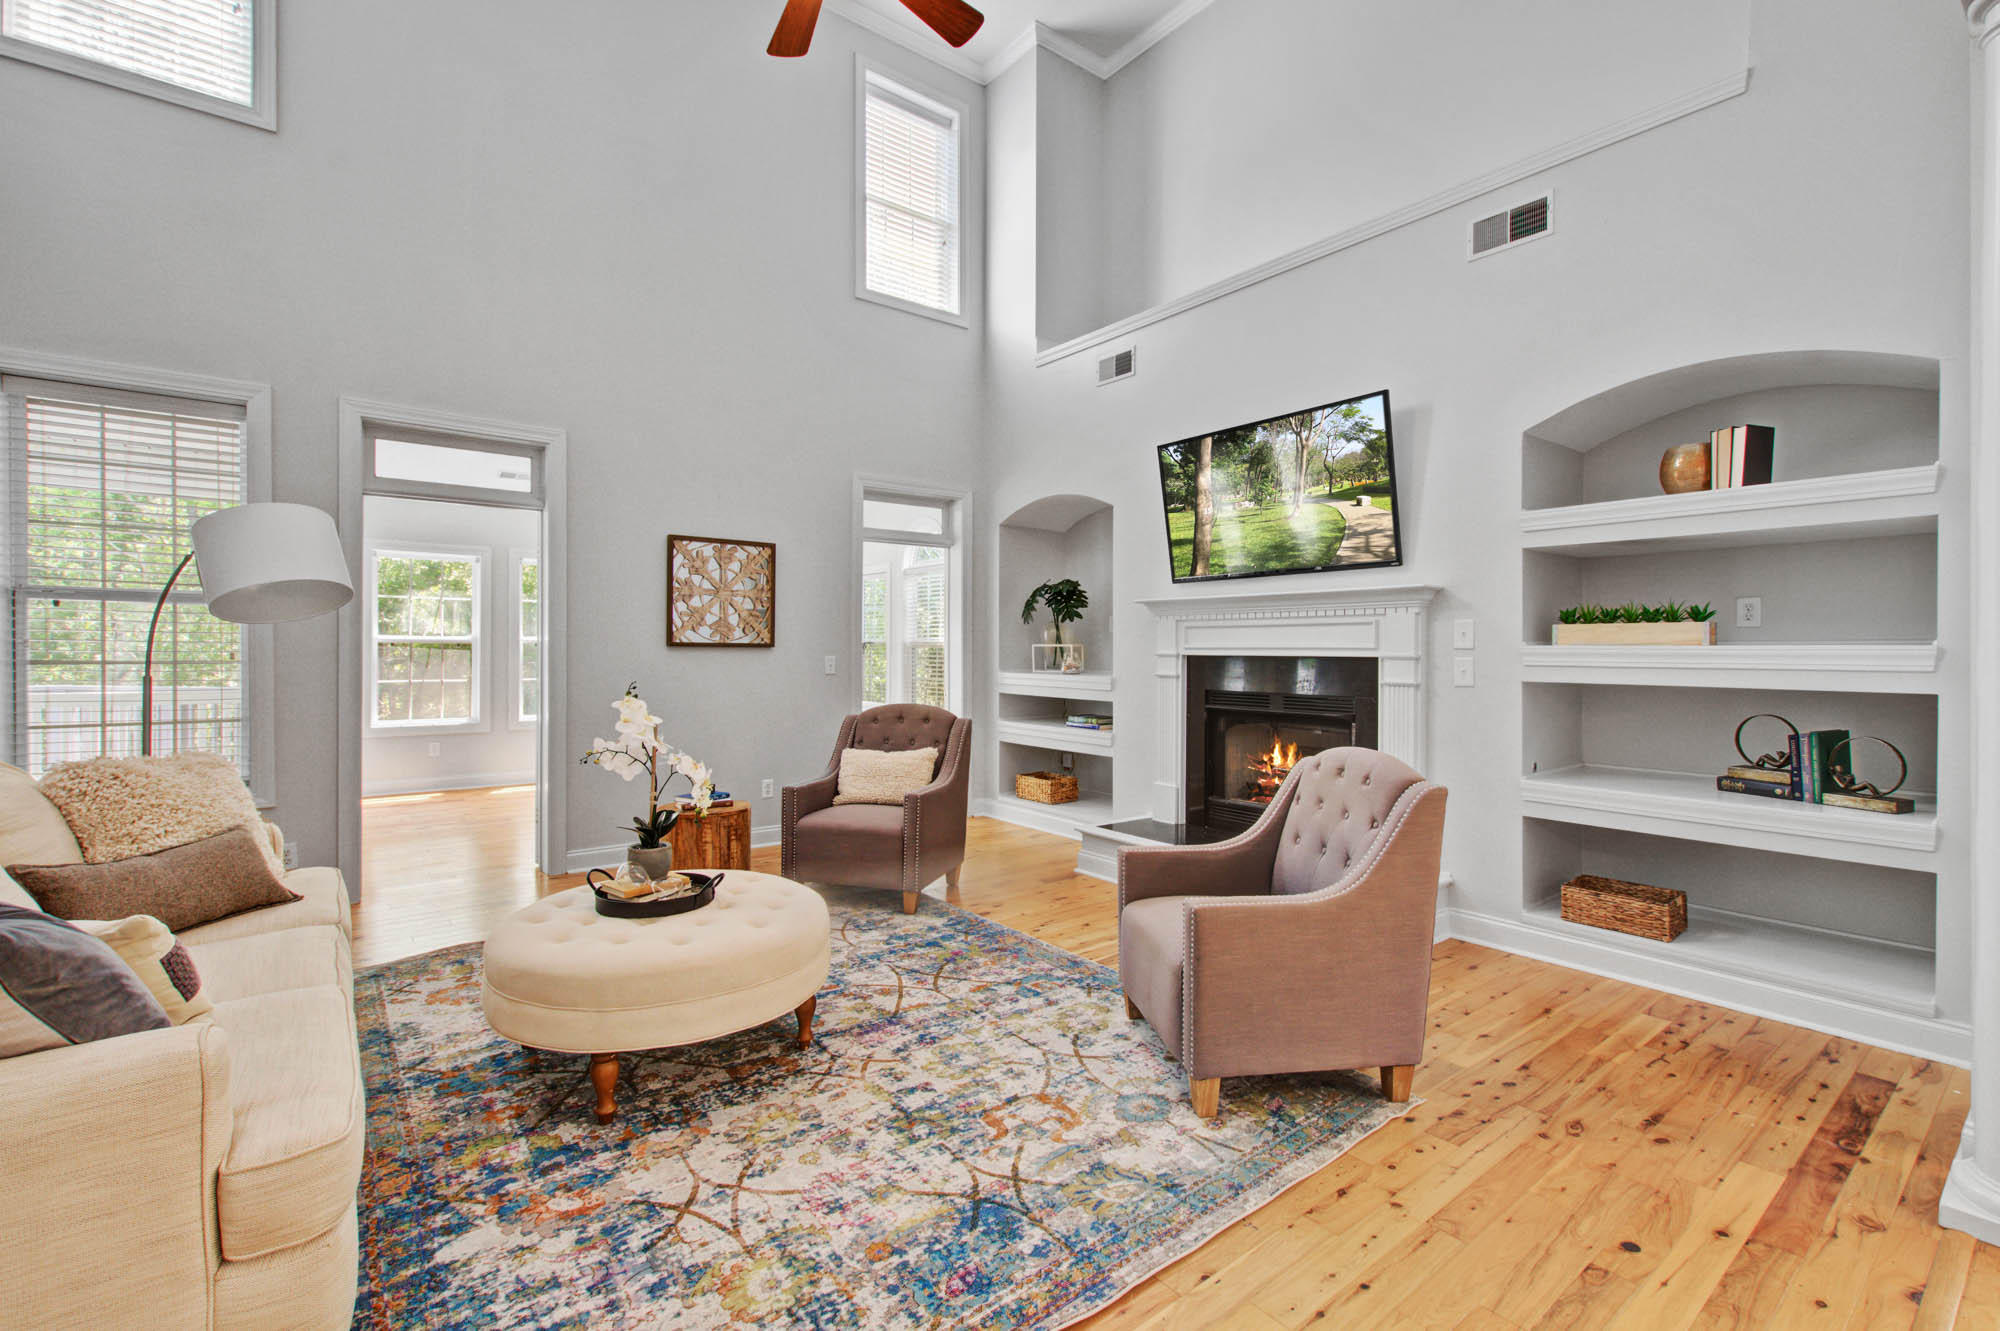 Rivertowne On The Wando Homes For Sale - 2193 Sandy Point, Mount Pleasant, SC - 29